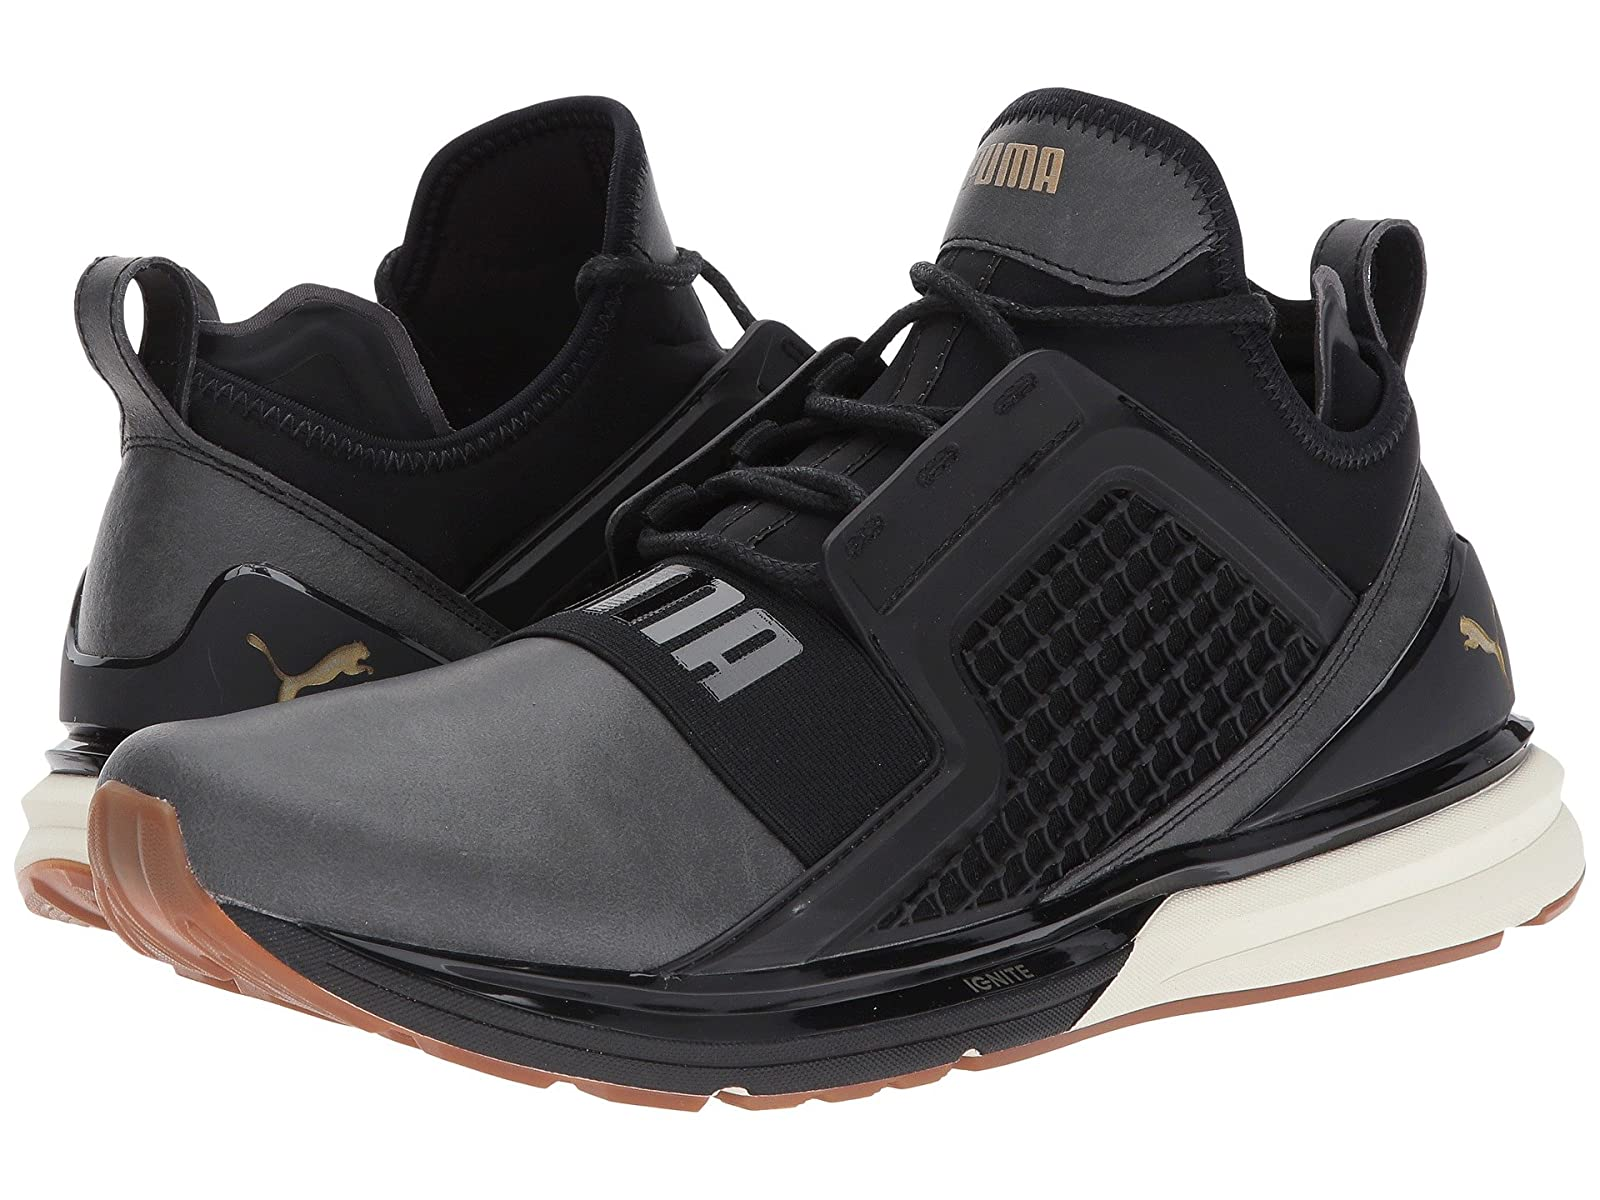 PUMA Ignite Limitless LeatherCheap and distinctive eye-catching shoes